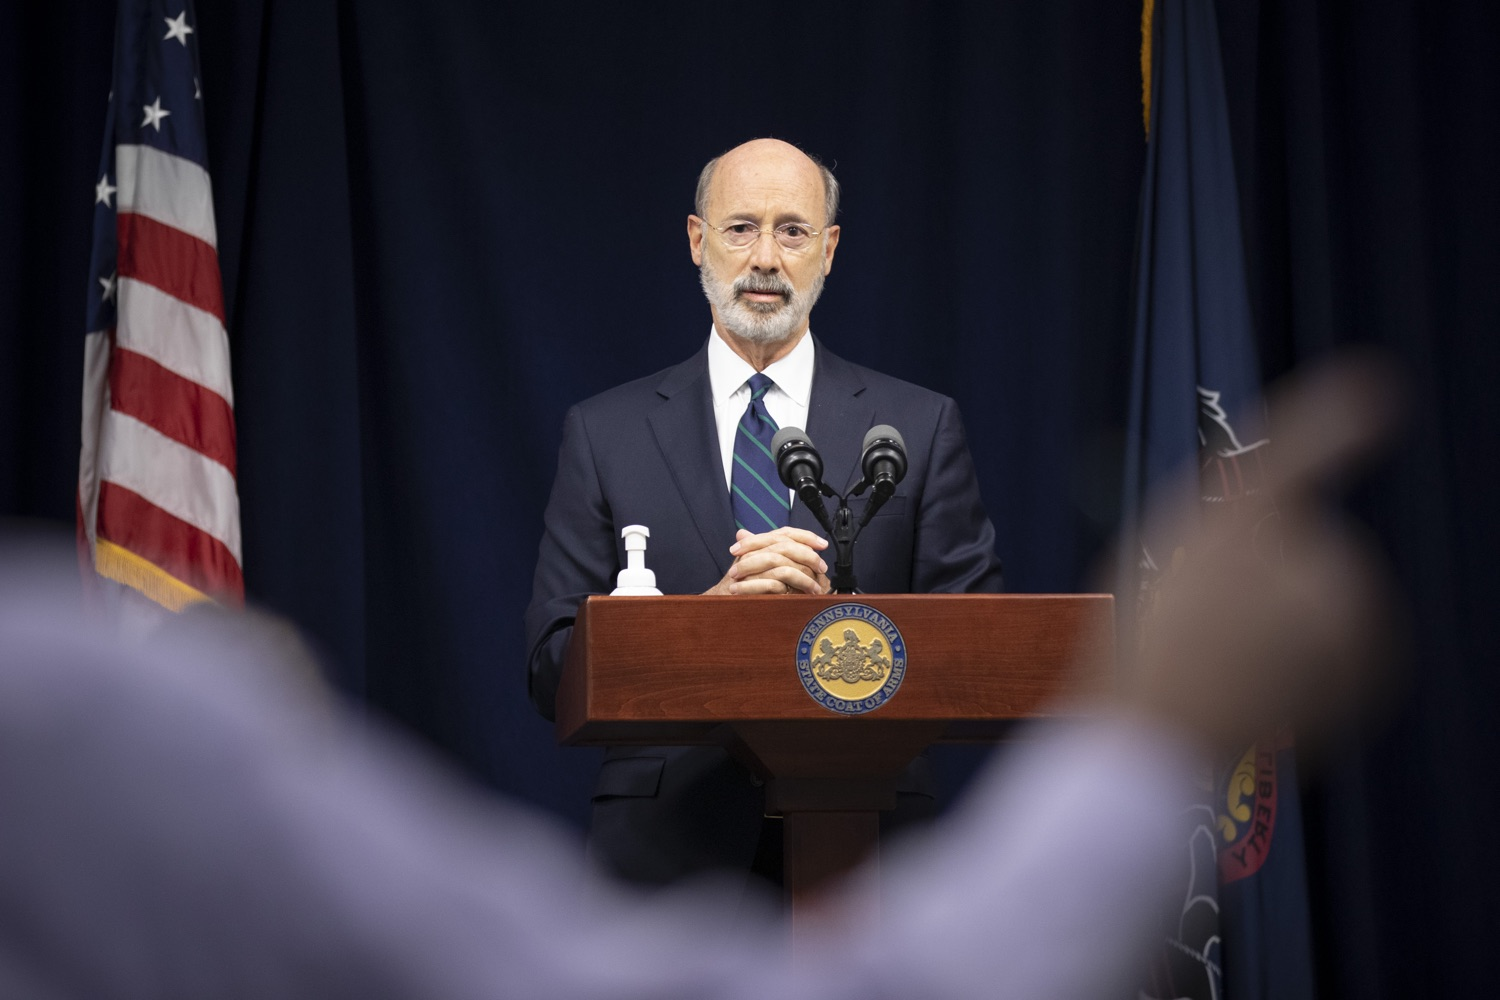 """<a href=""""https://filesource.wostreaming.net/commonwealthofpa/photo/18239_gov_recMarijuana_dz_012.jpg"""" target=""""_blank"""">⇣Download Photo<br></a>Pennsylvania Governor Tom Wolf speaking with the press. Governor Tom Wolf and Lt. Governor John Fetterman today called on the legislature to take up the legalization of adult-use cannabis to help with the states economic recovery amid COVID-19. Legalization will also create more outlets for important restorative justice programs in the commonwealth.  Harrisburg, PA  Sept. 3, 2020"""